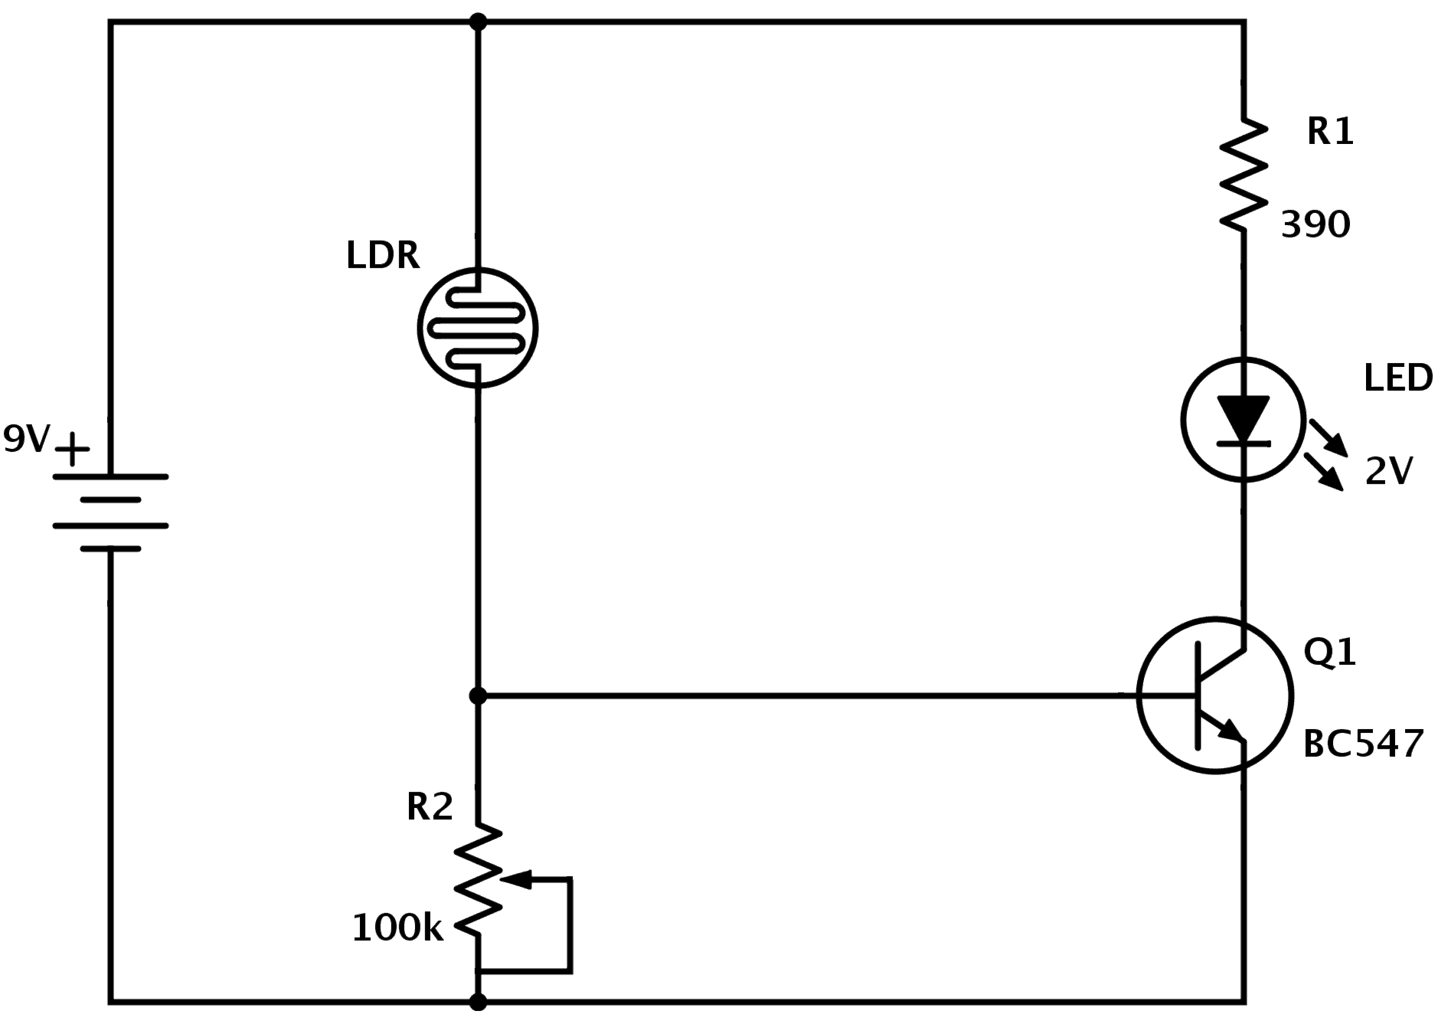 LDR circuit improved circuit diagram how to read and understand any schematic circuit diagram pdf at bakdesigns.co